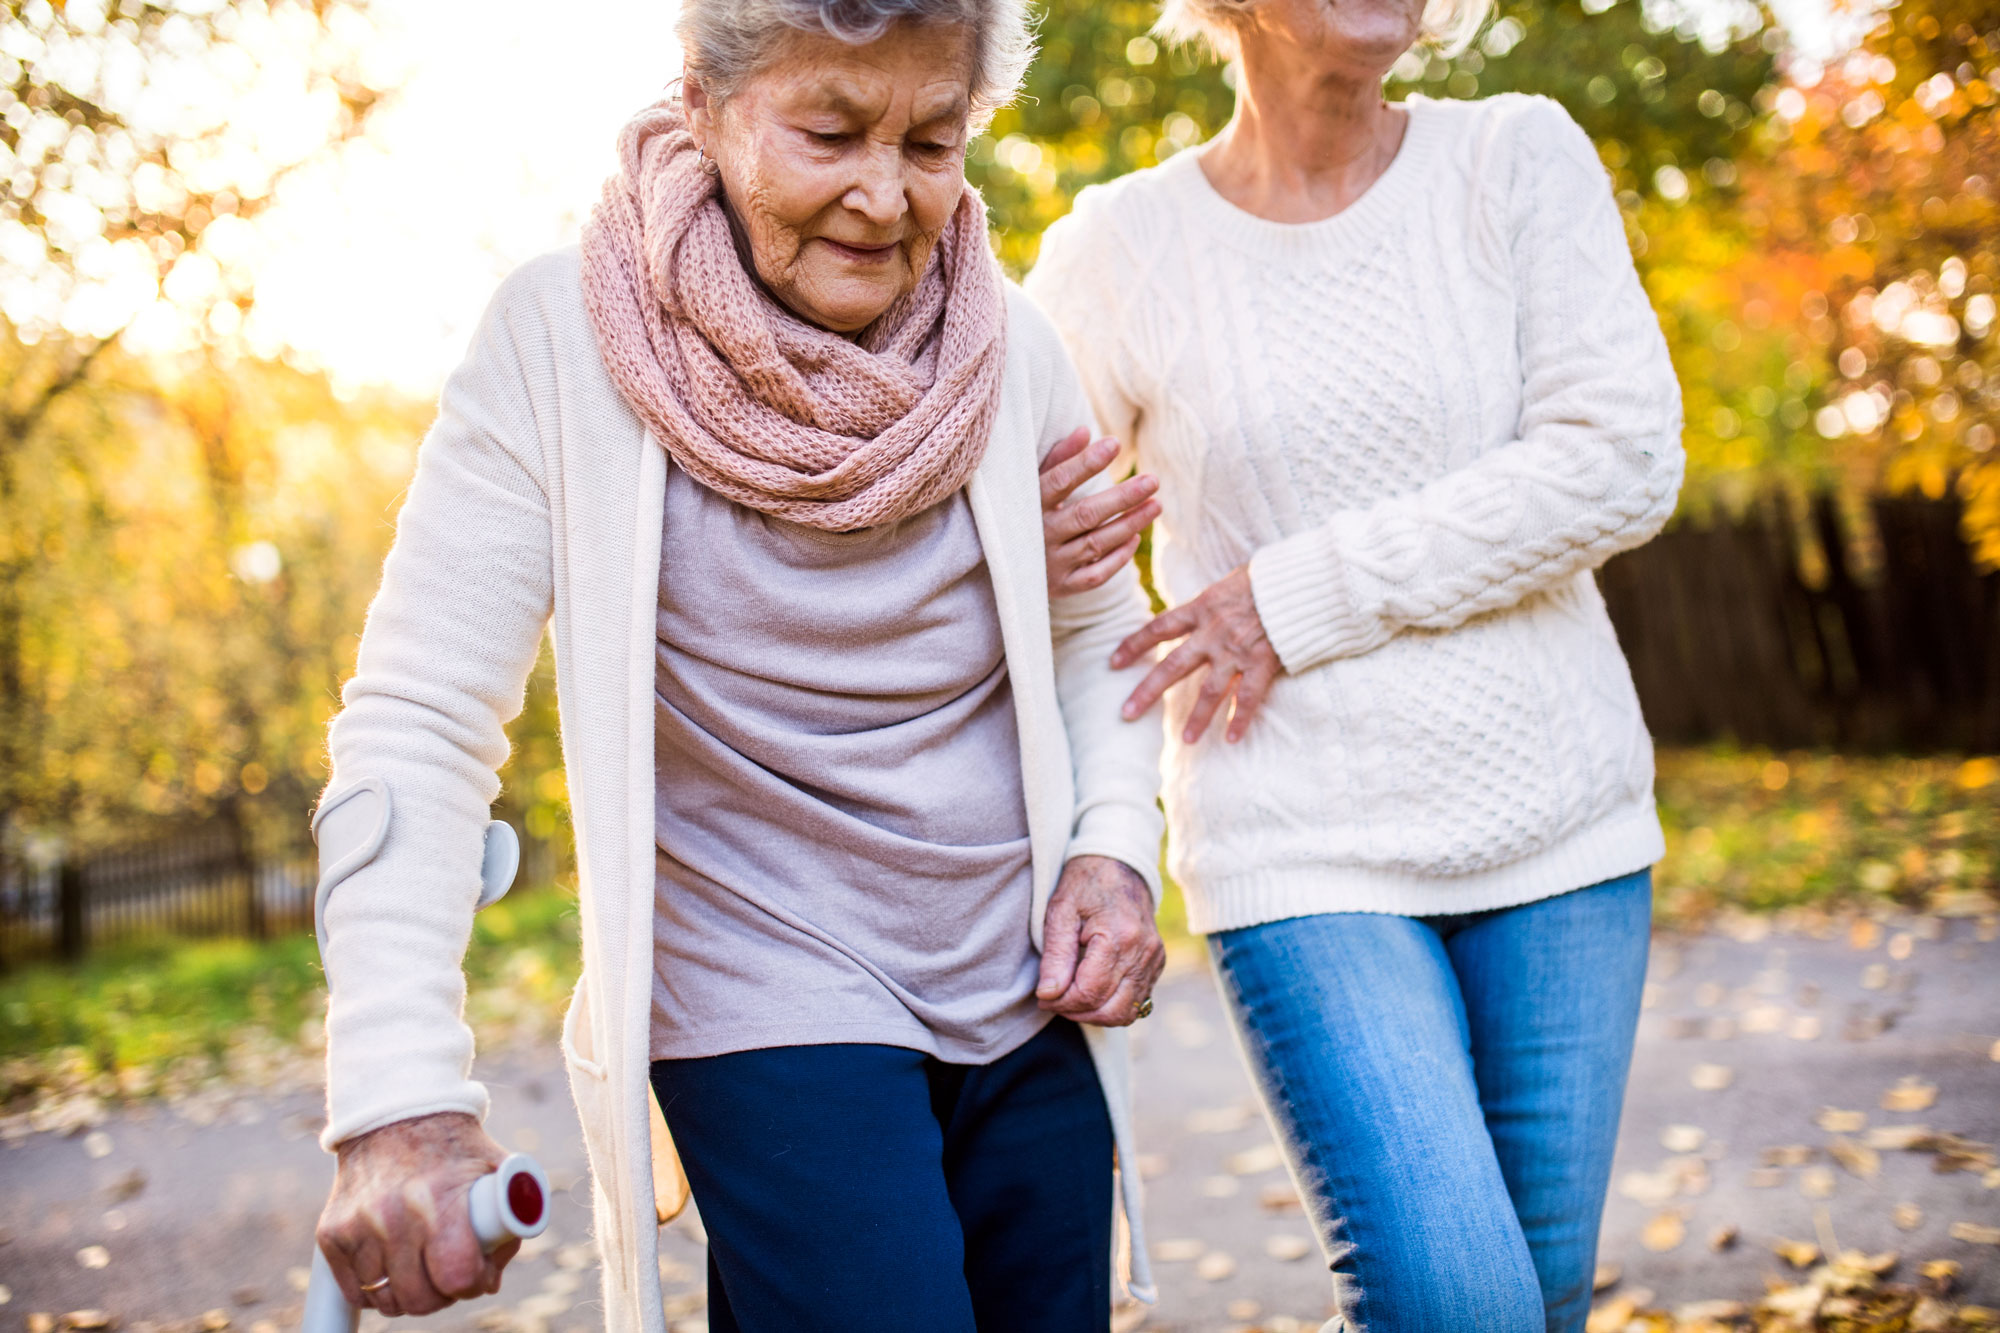 Elderly Woman Walking in Fall - Memory Care Home Solutions - Giving Back